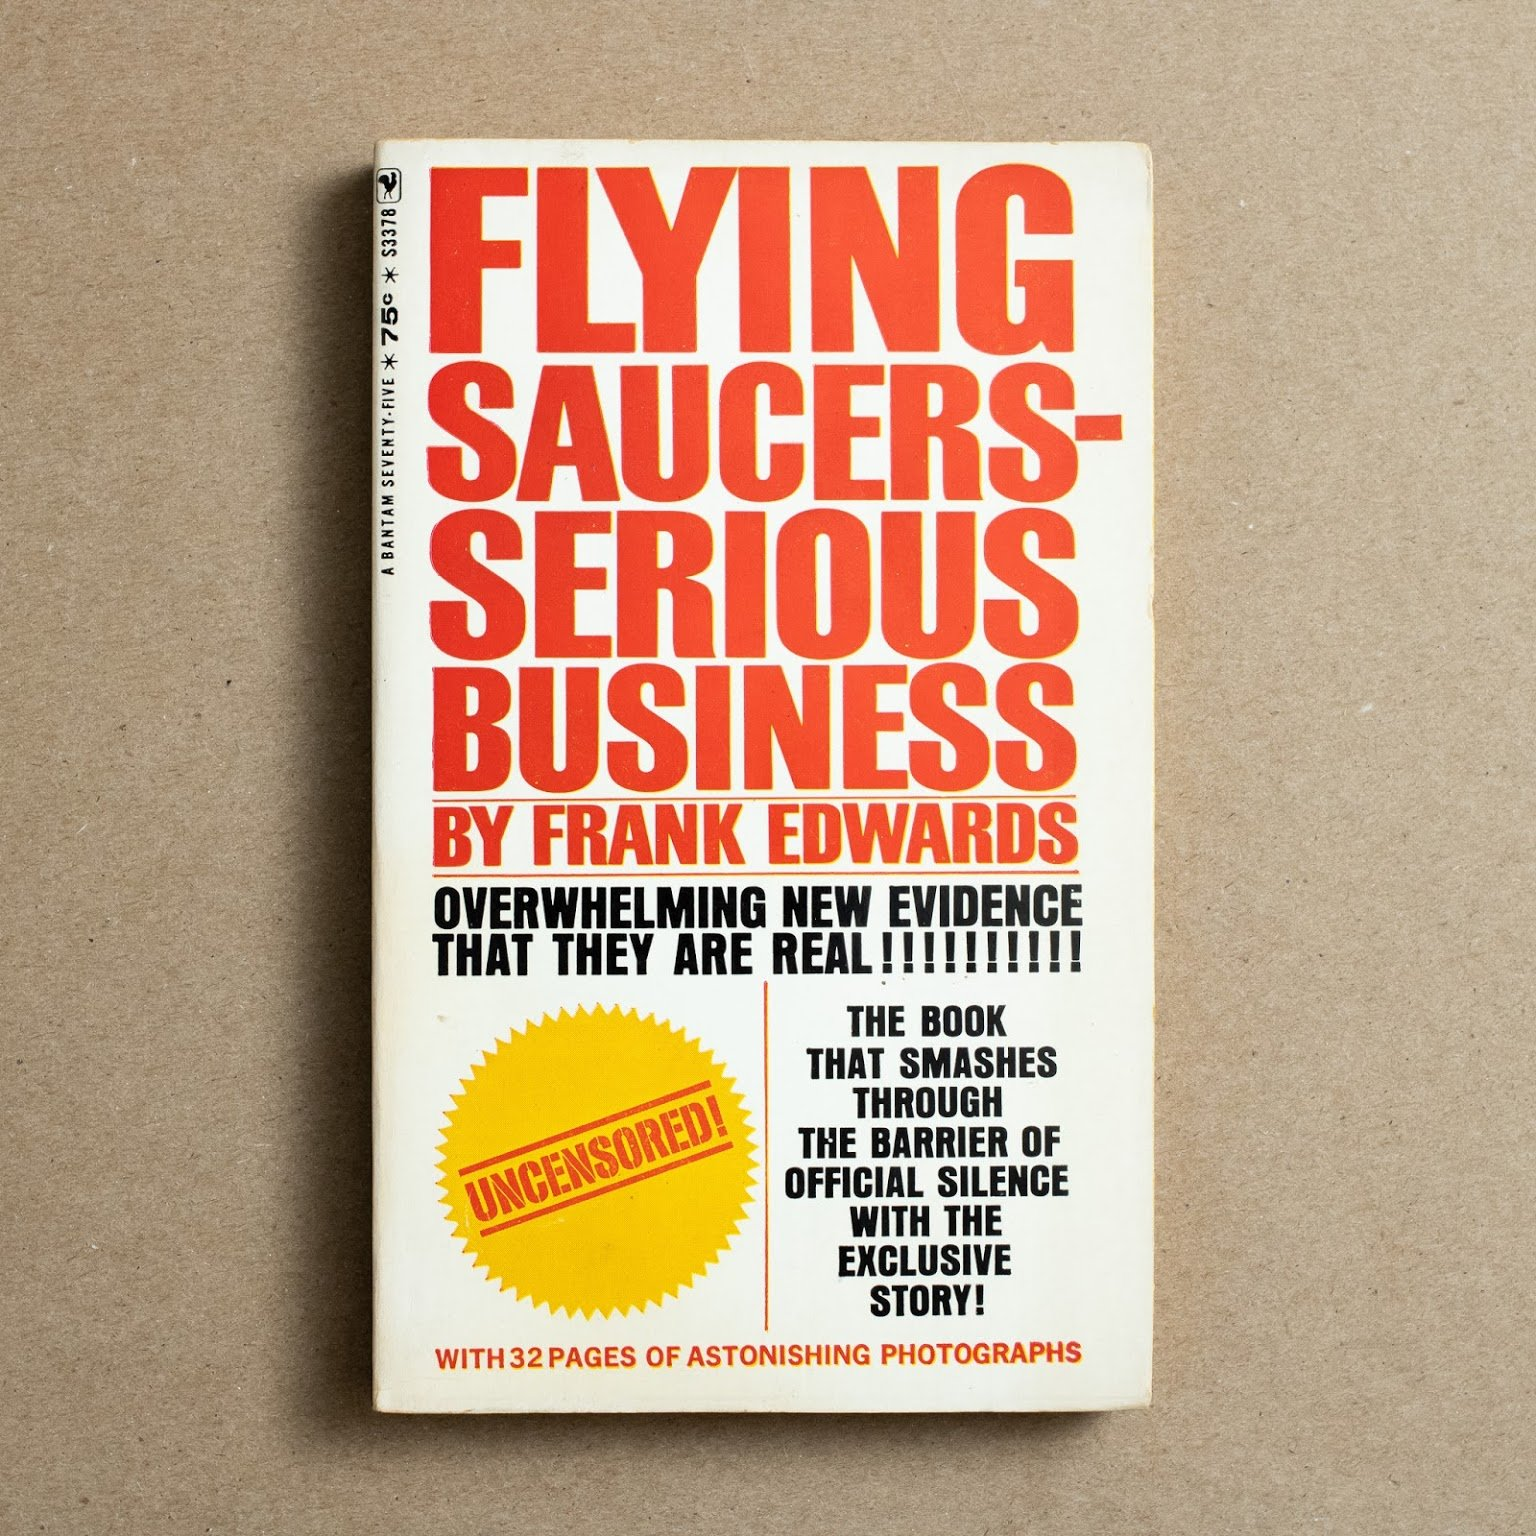 Flying Saucers—Serious Business